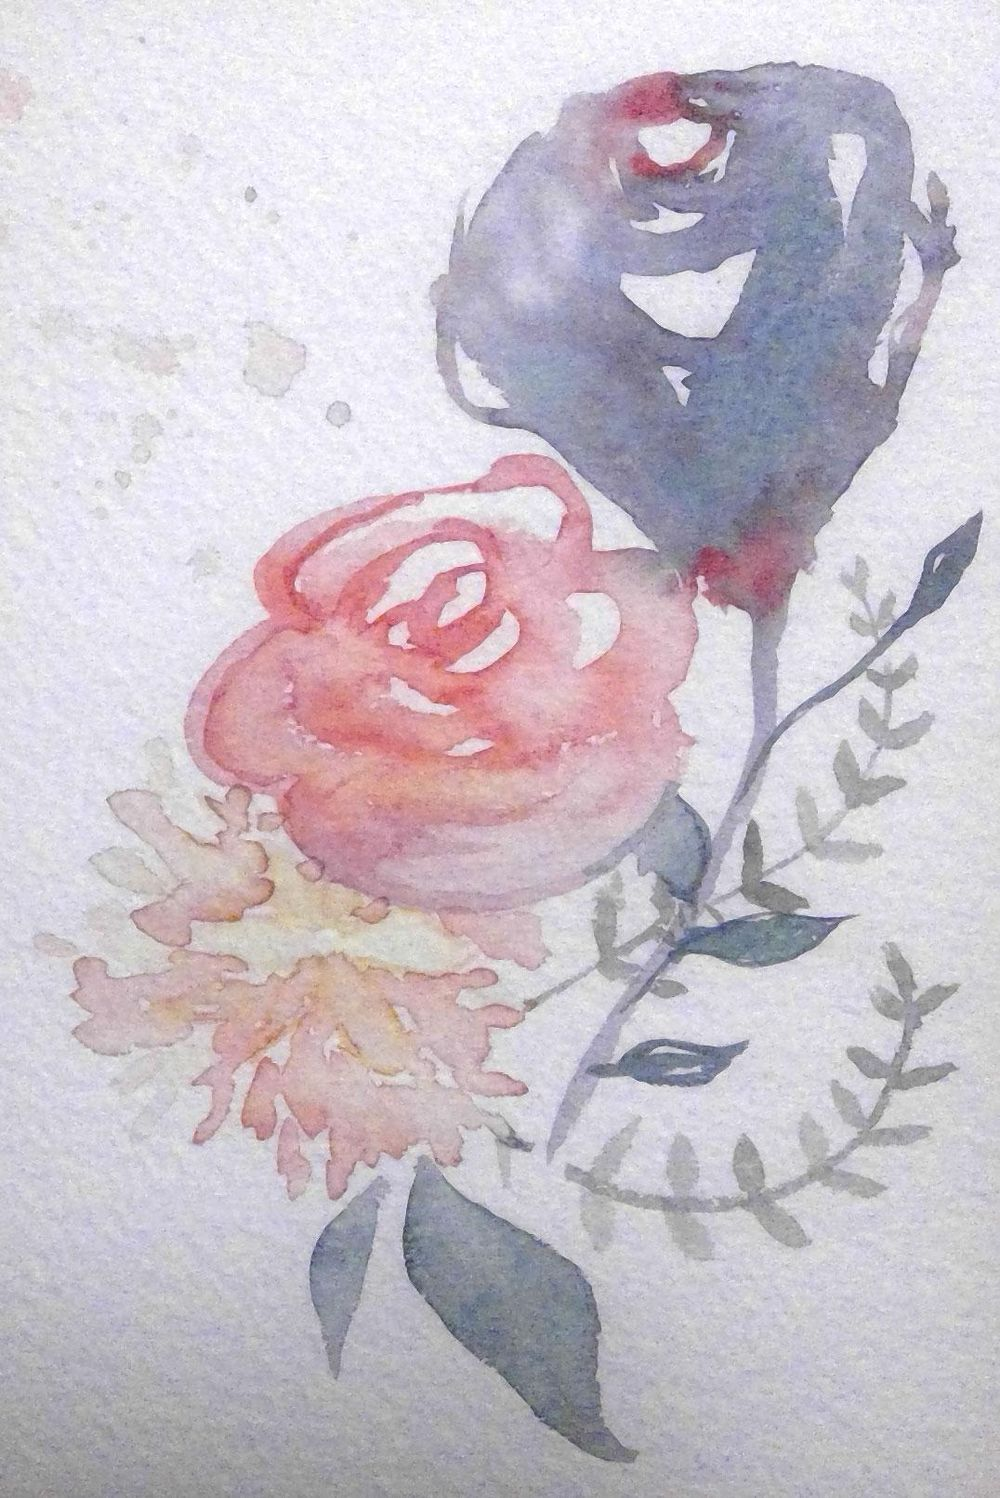 Unfinished roses - image 1 - student project